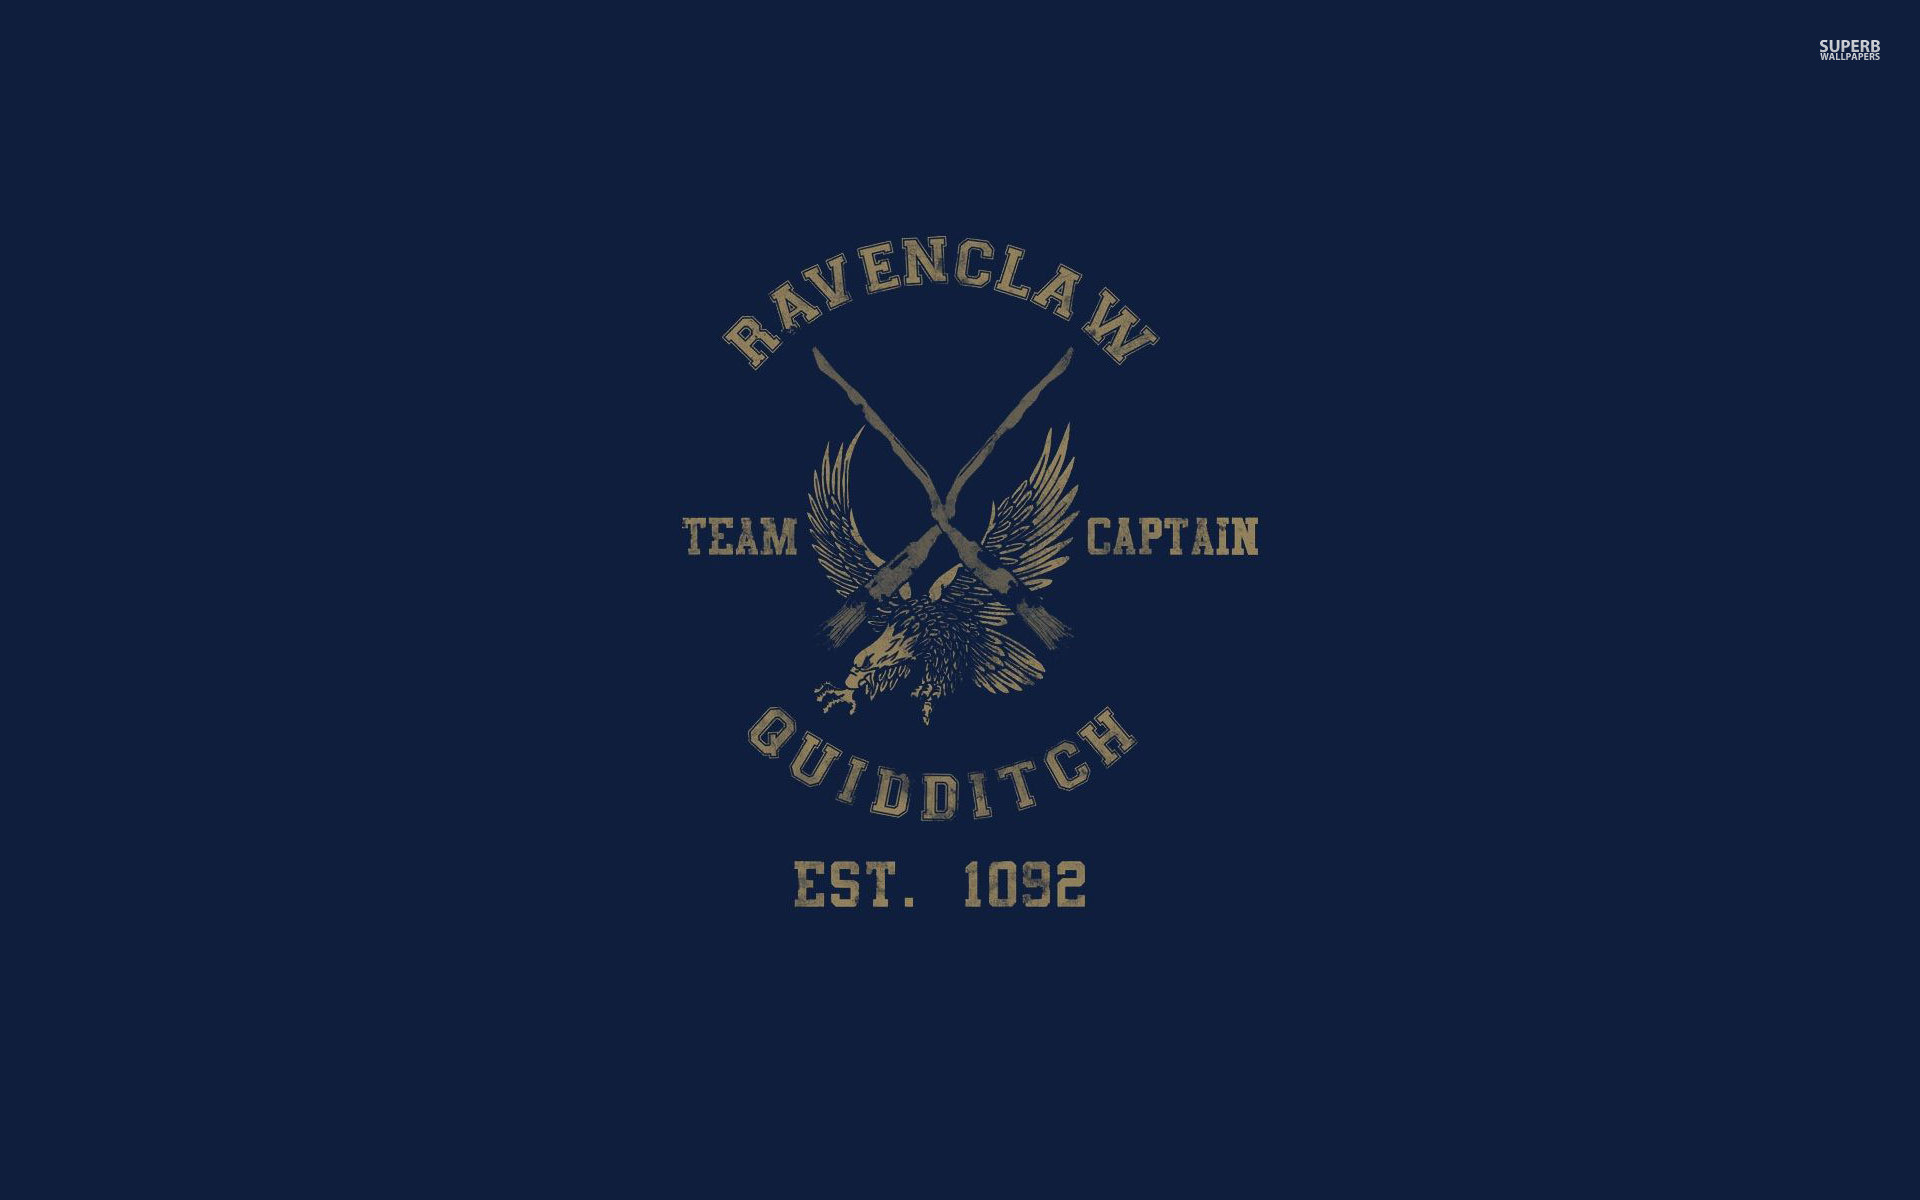 1920x1200 Ravenclaw Wallpaper Hd Stay031